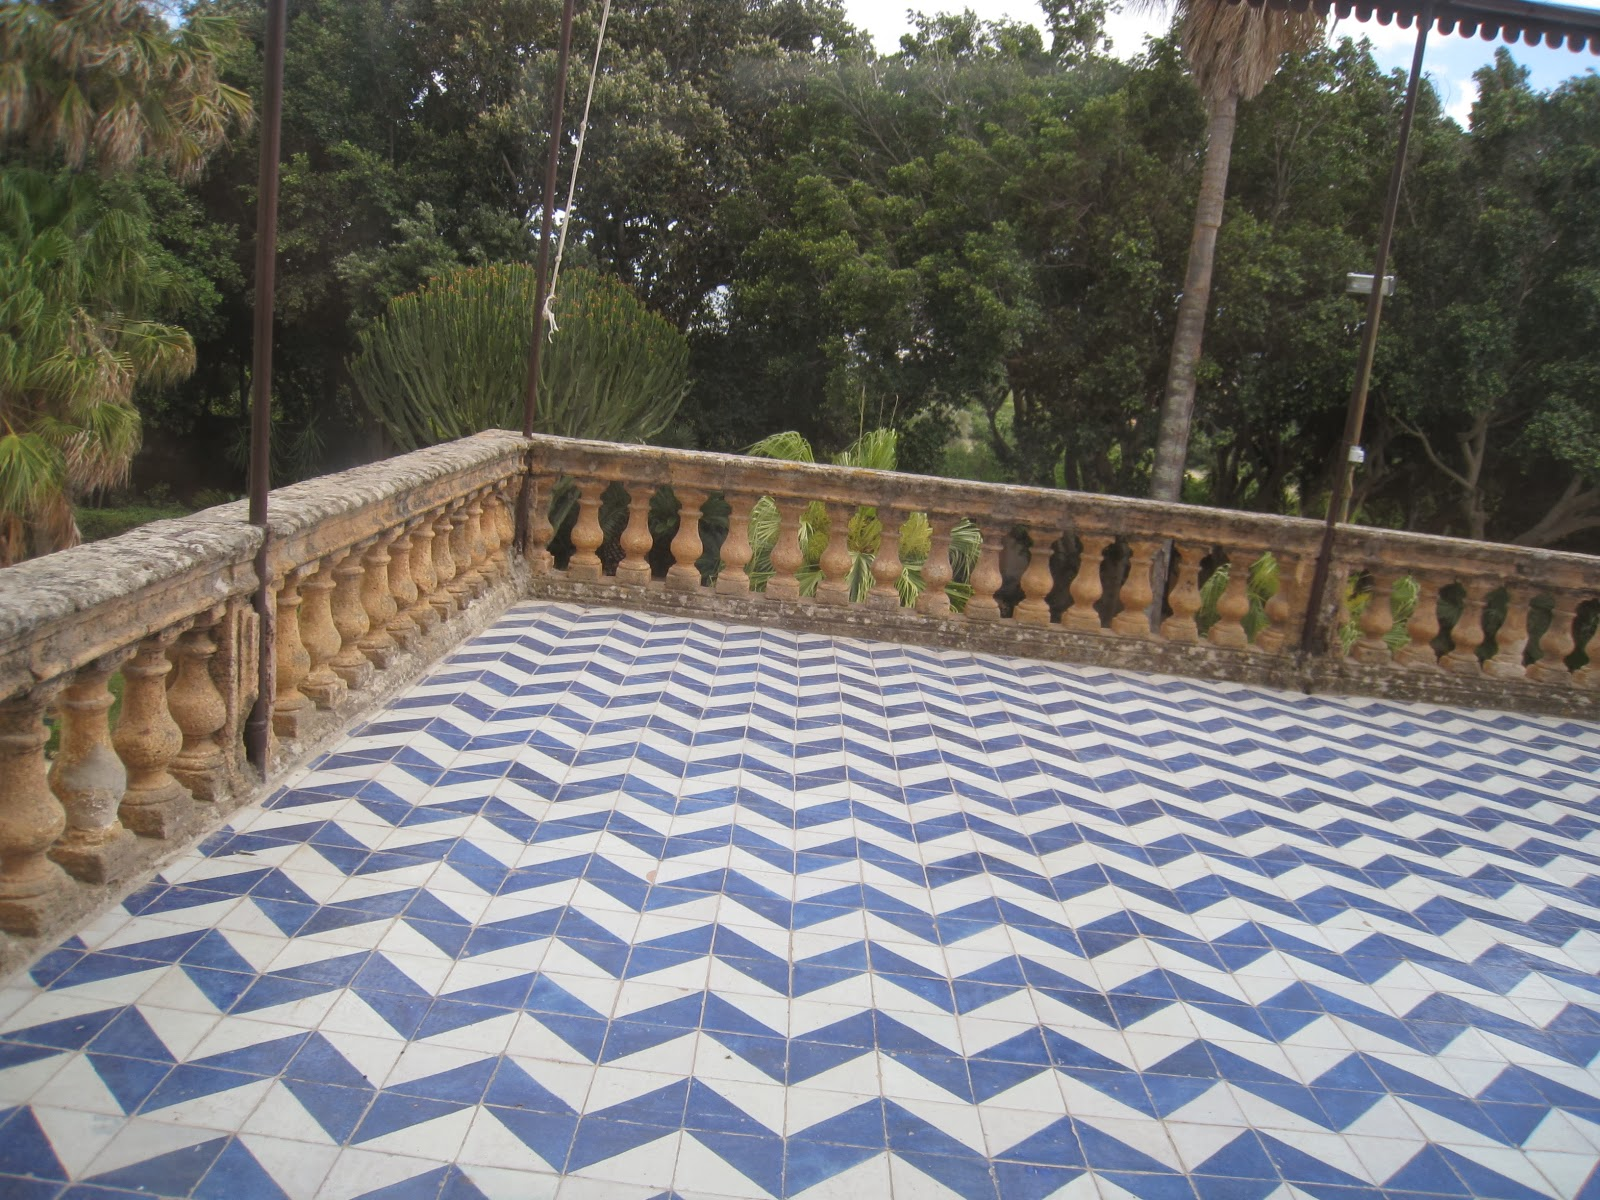 Foundation dezin decor terrace tiles design for Terrace tiles